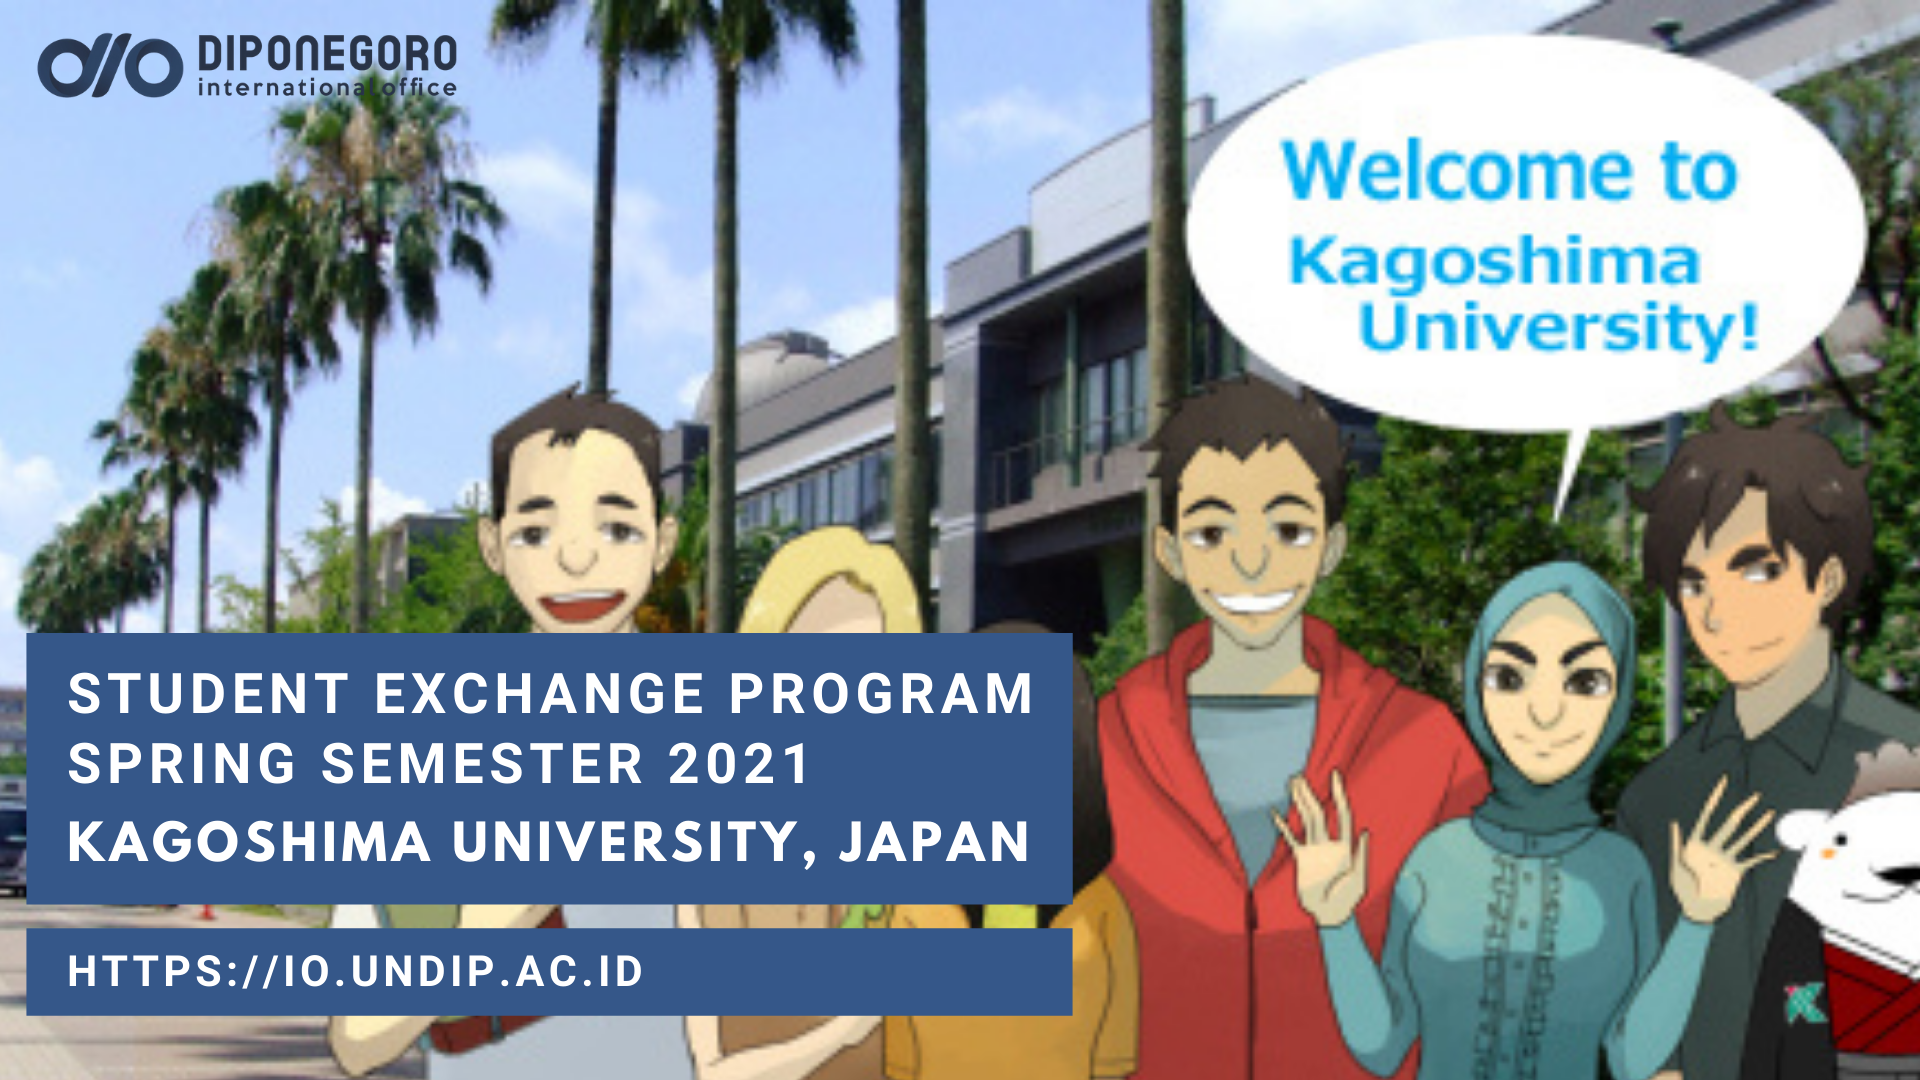 KAGOSHIMA UNIVERSITY EXCHANGE PROGRAM SPRING 2021